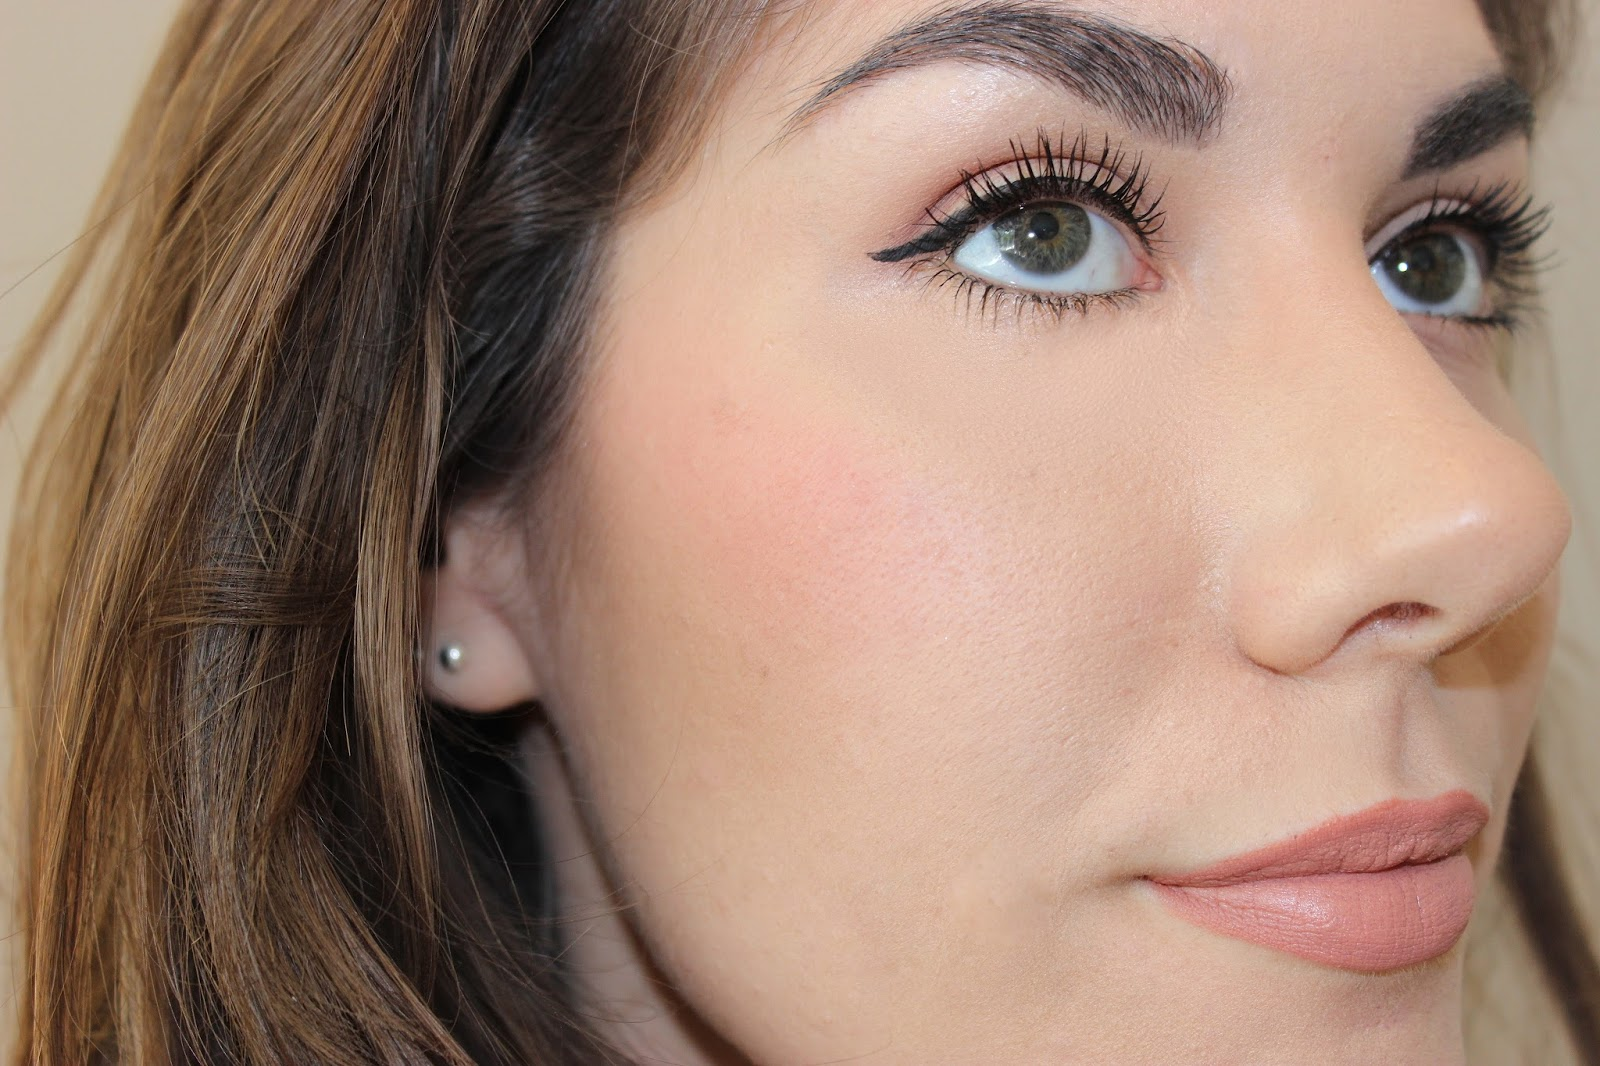 Bobbi Brown Blush in Pretty Coral Review and Swatches | A Day In ...